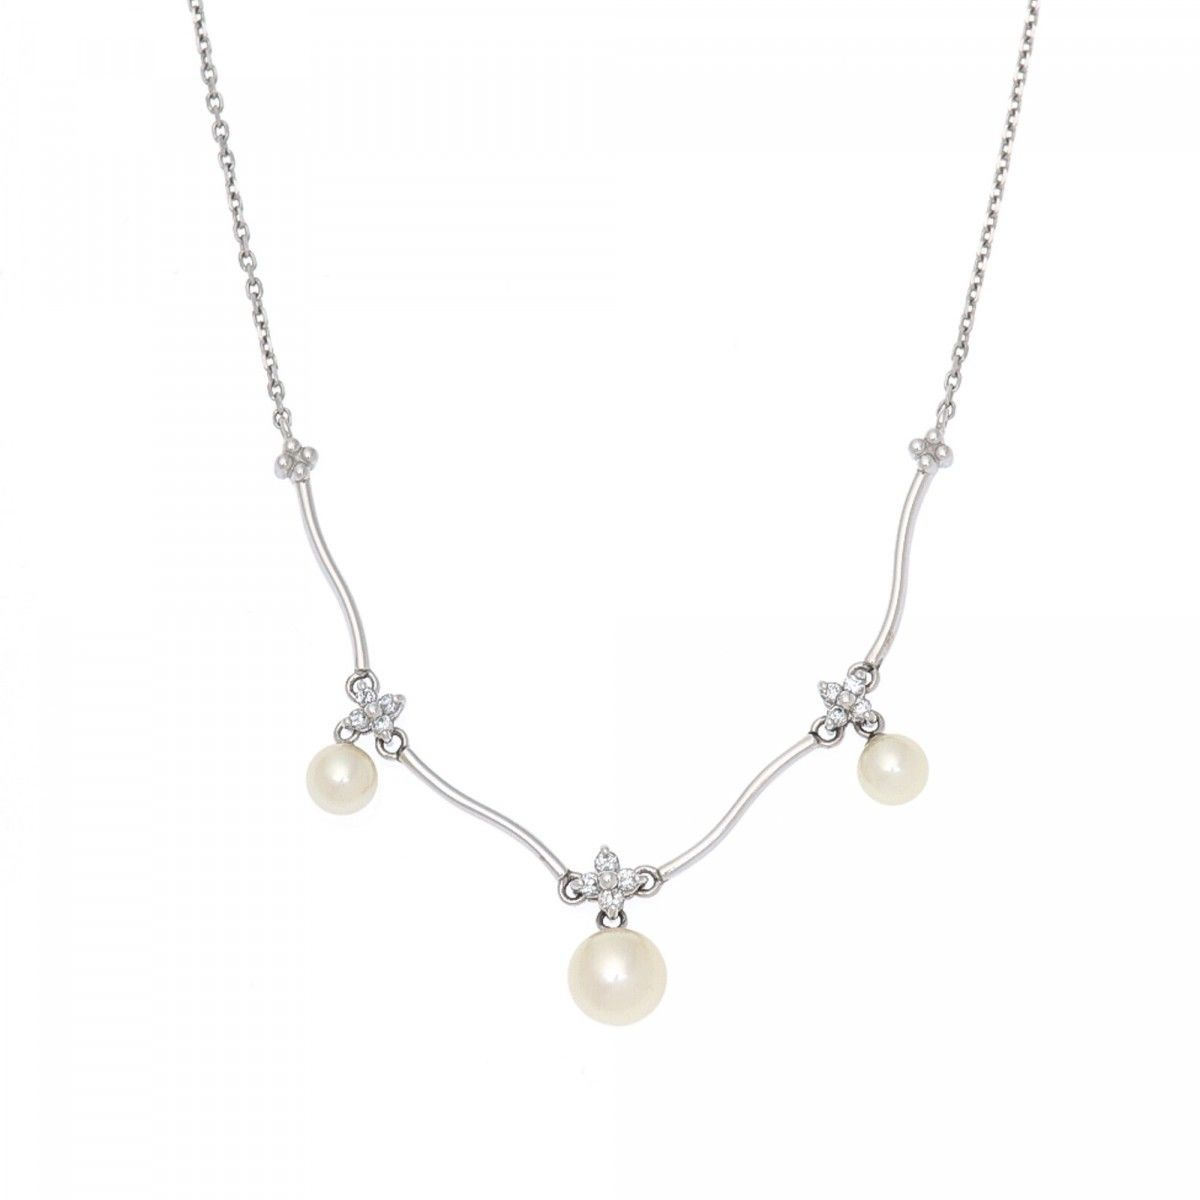 de colpearl necklace maria products diamond australian jewelry pearl